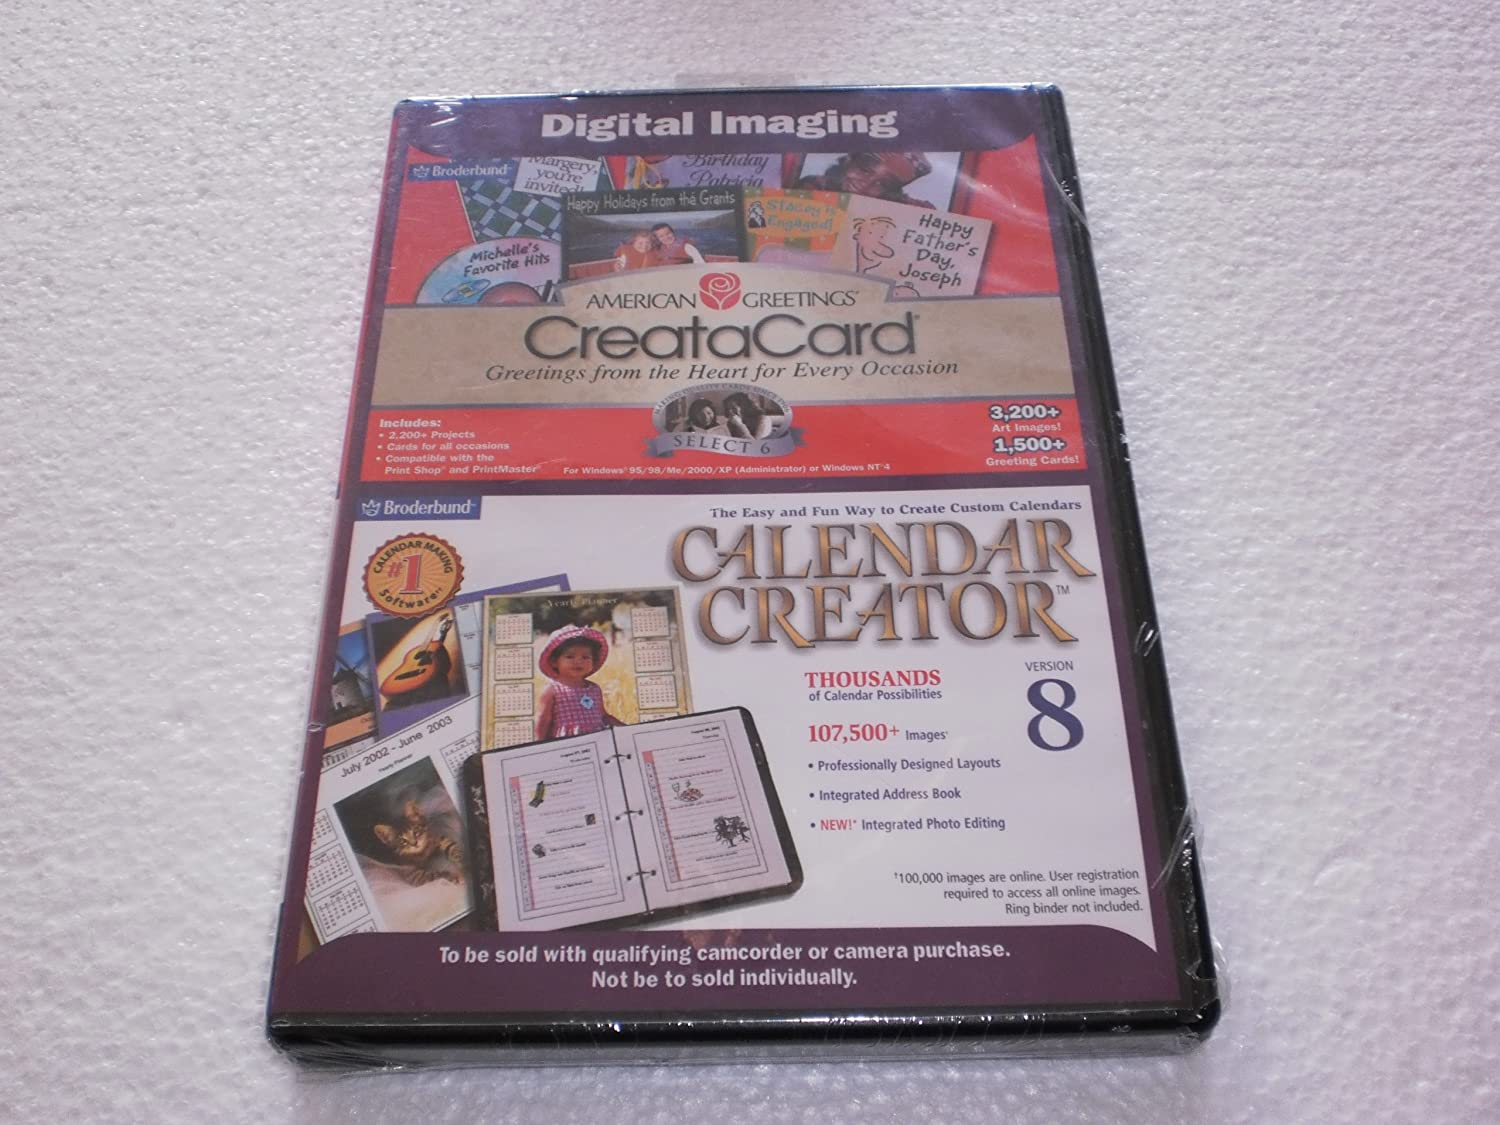 Amazon american greetings creatacrad select 6 calendar creator 8 m4hsunfo